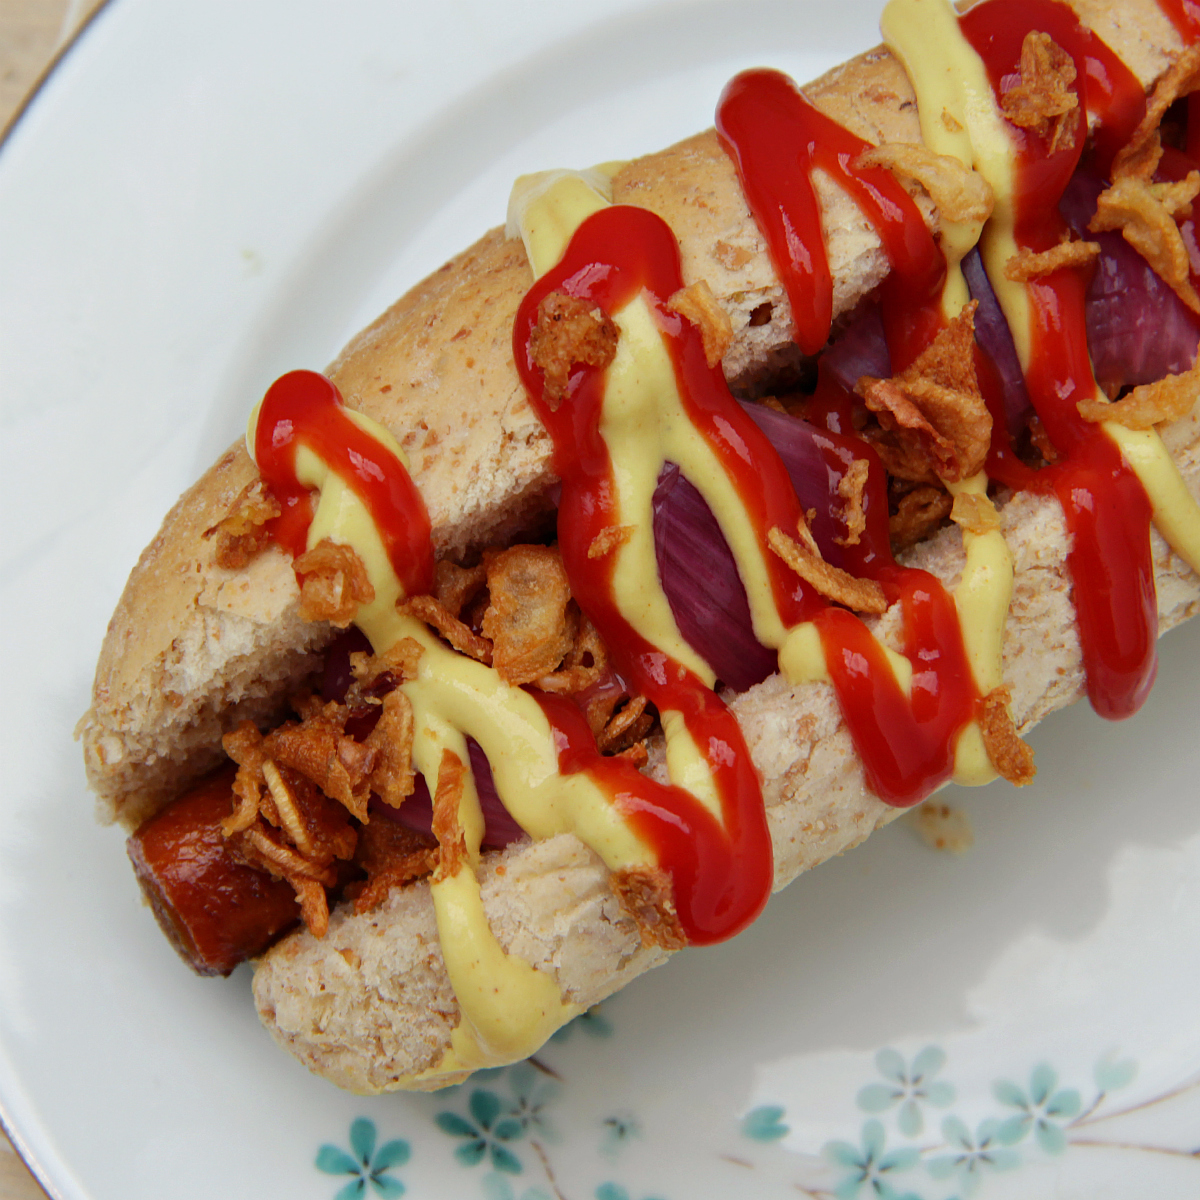 Vegan Hotdogs / Carrot Dogs - The Vegan Eskimo